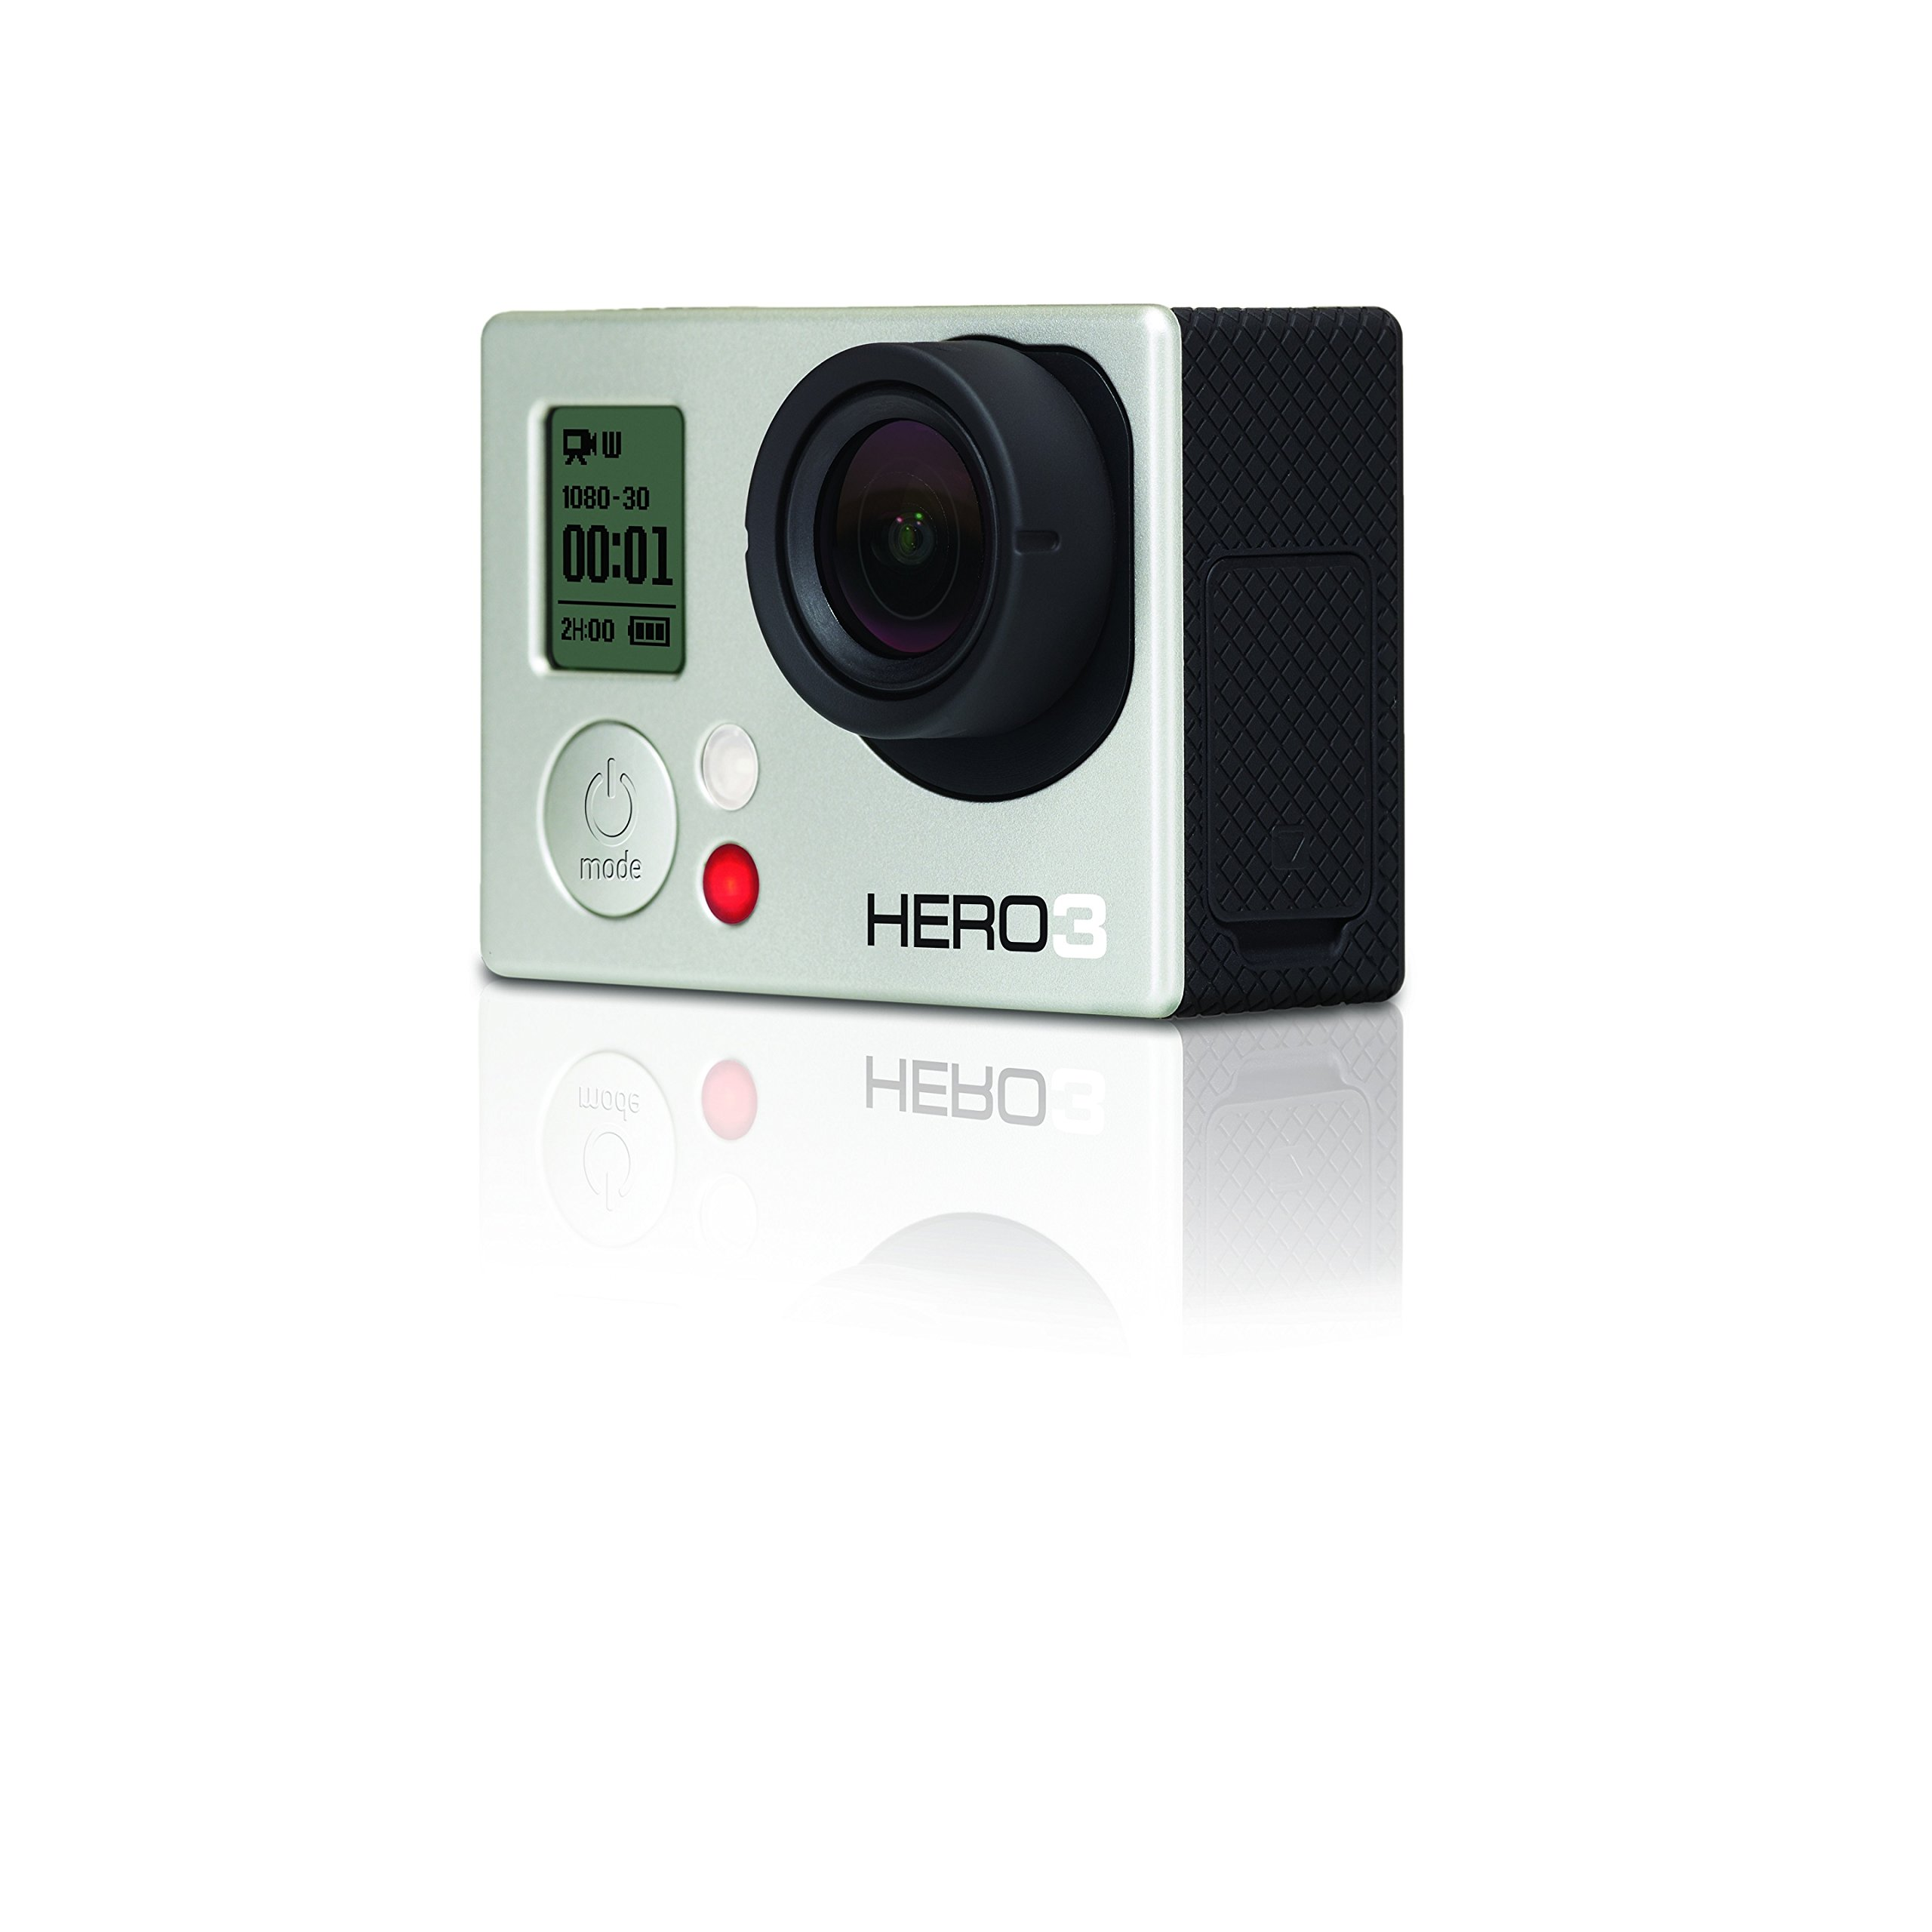 GoPro HERO3 White Edition Caméra 5 MP 1080p/30fps 720p/60 fps Wi-Fi product image